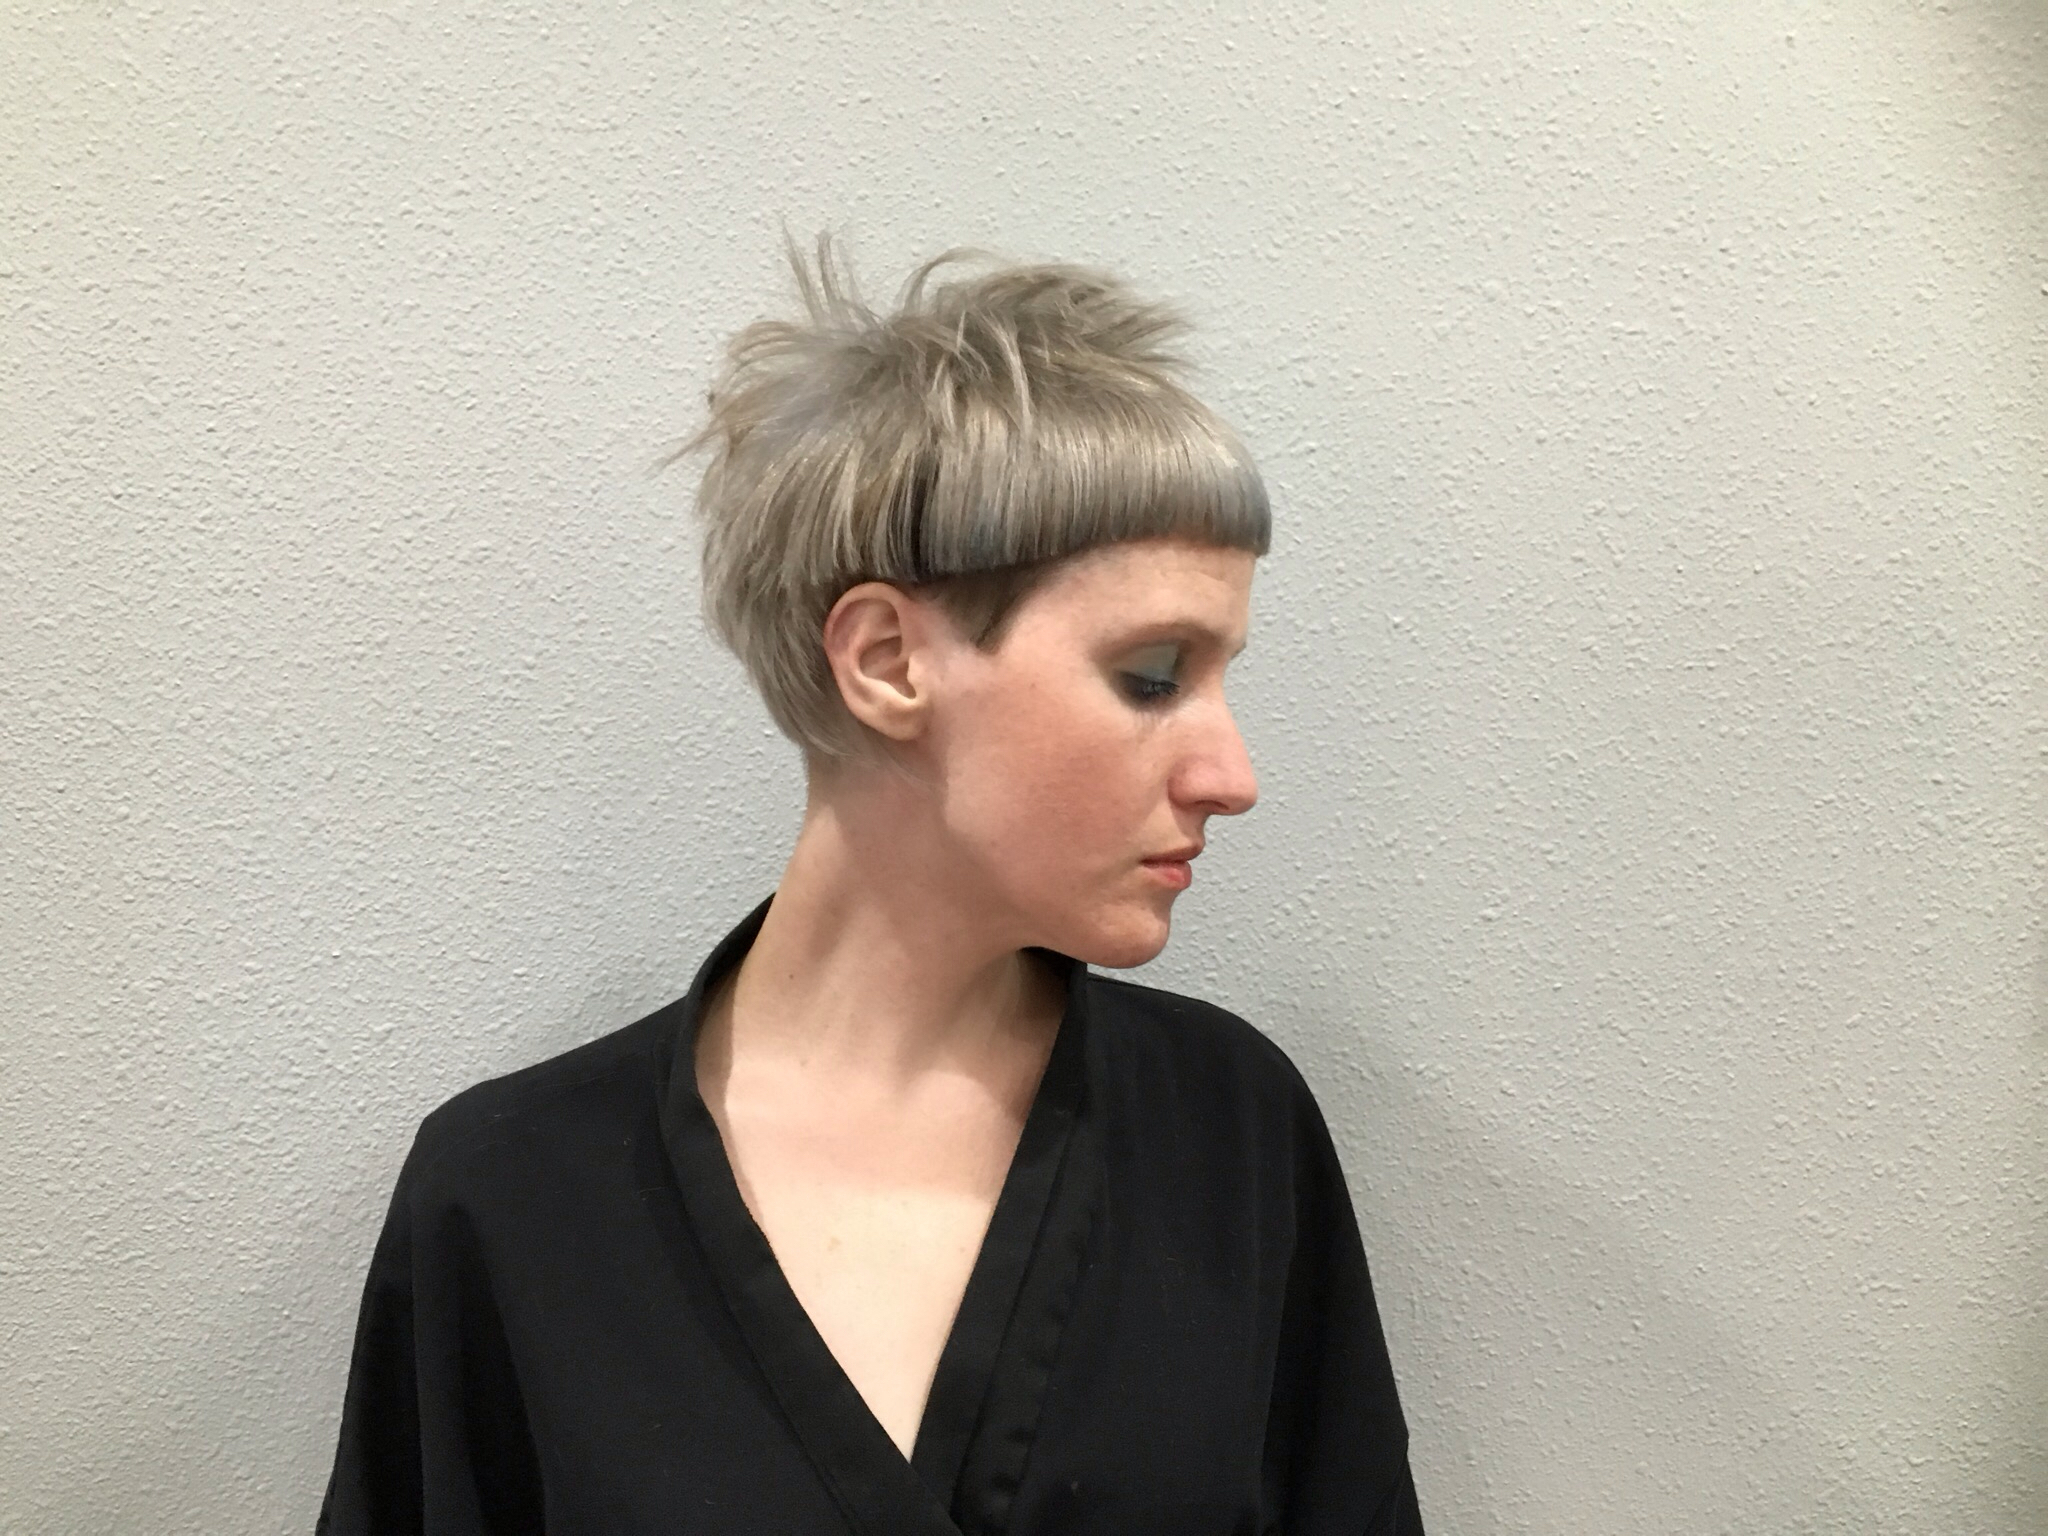 how to hold scissors haircut women for beginner